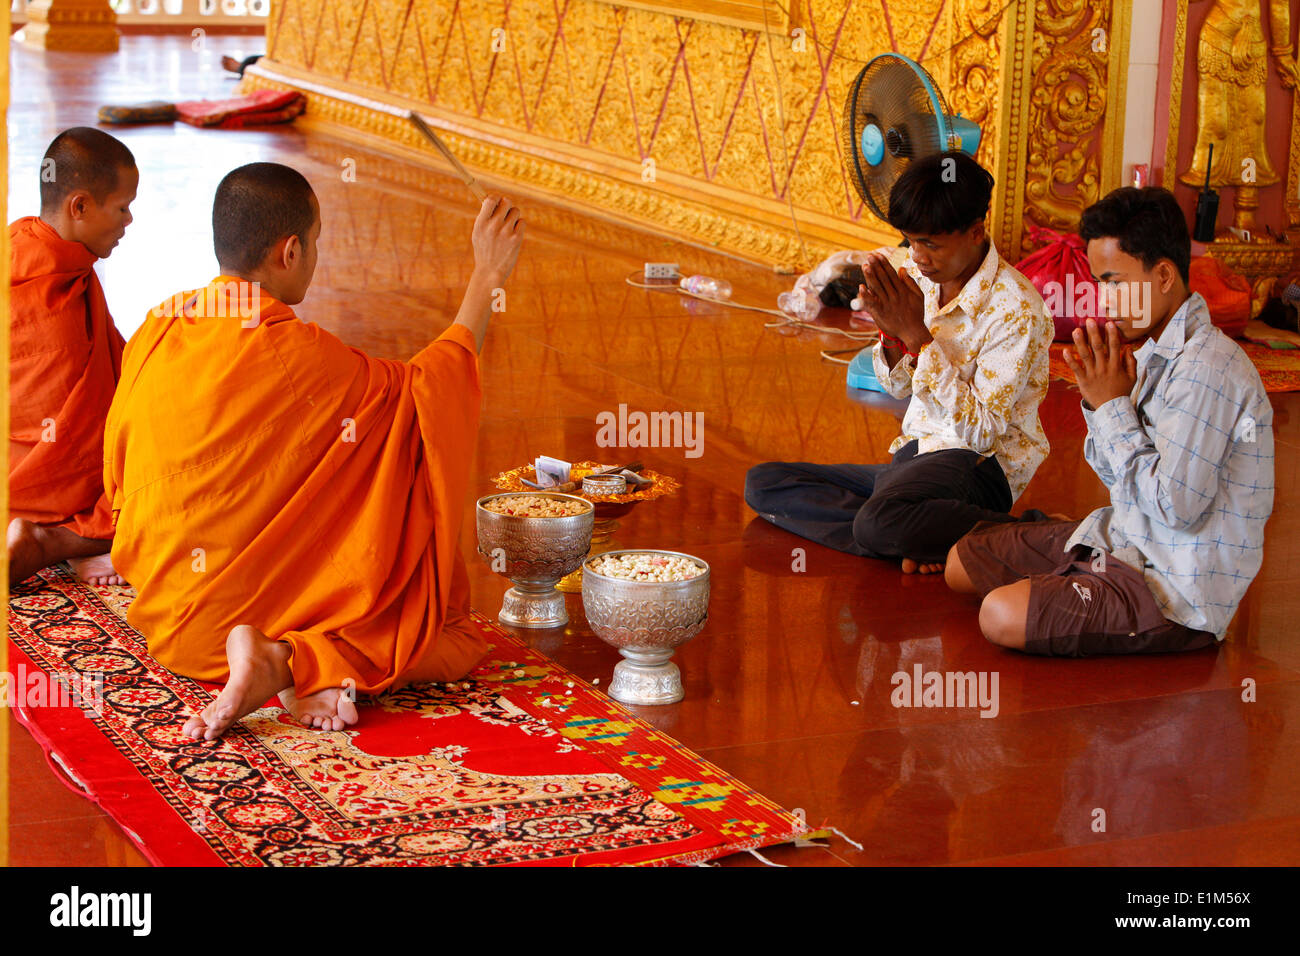 Buddhist ceremony in a cambodian Pagoda. Stock Photo